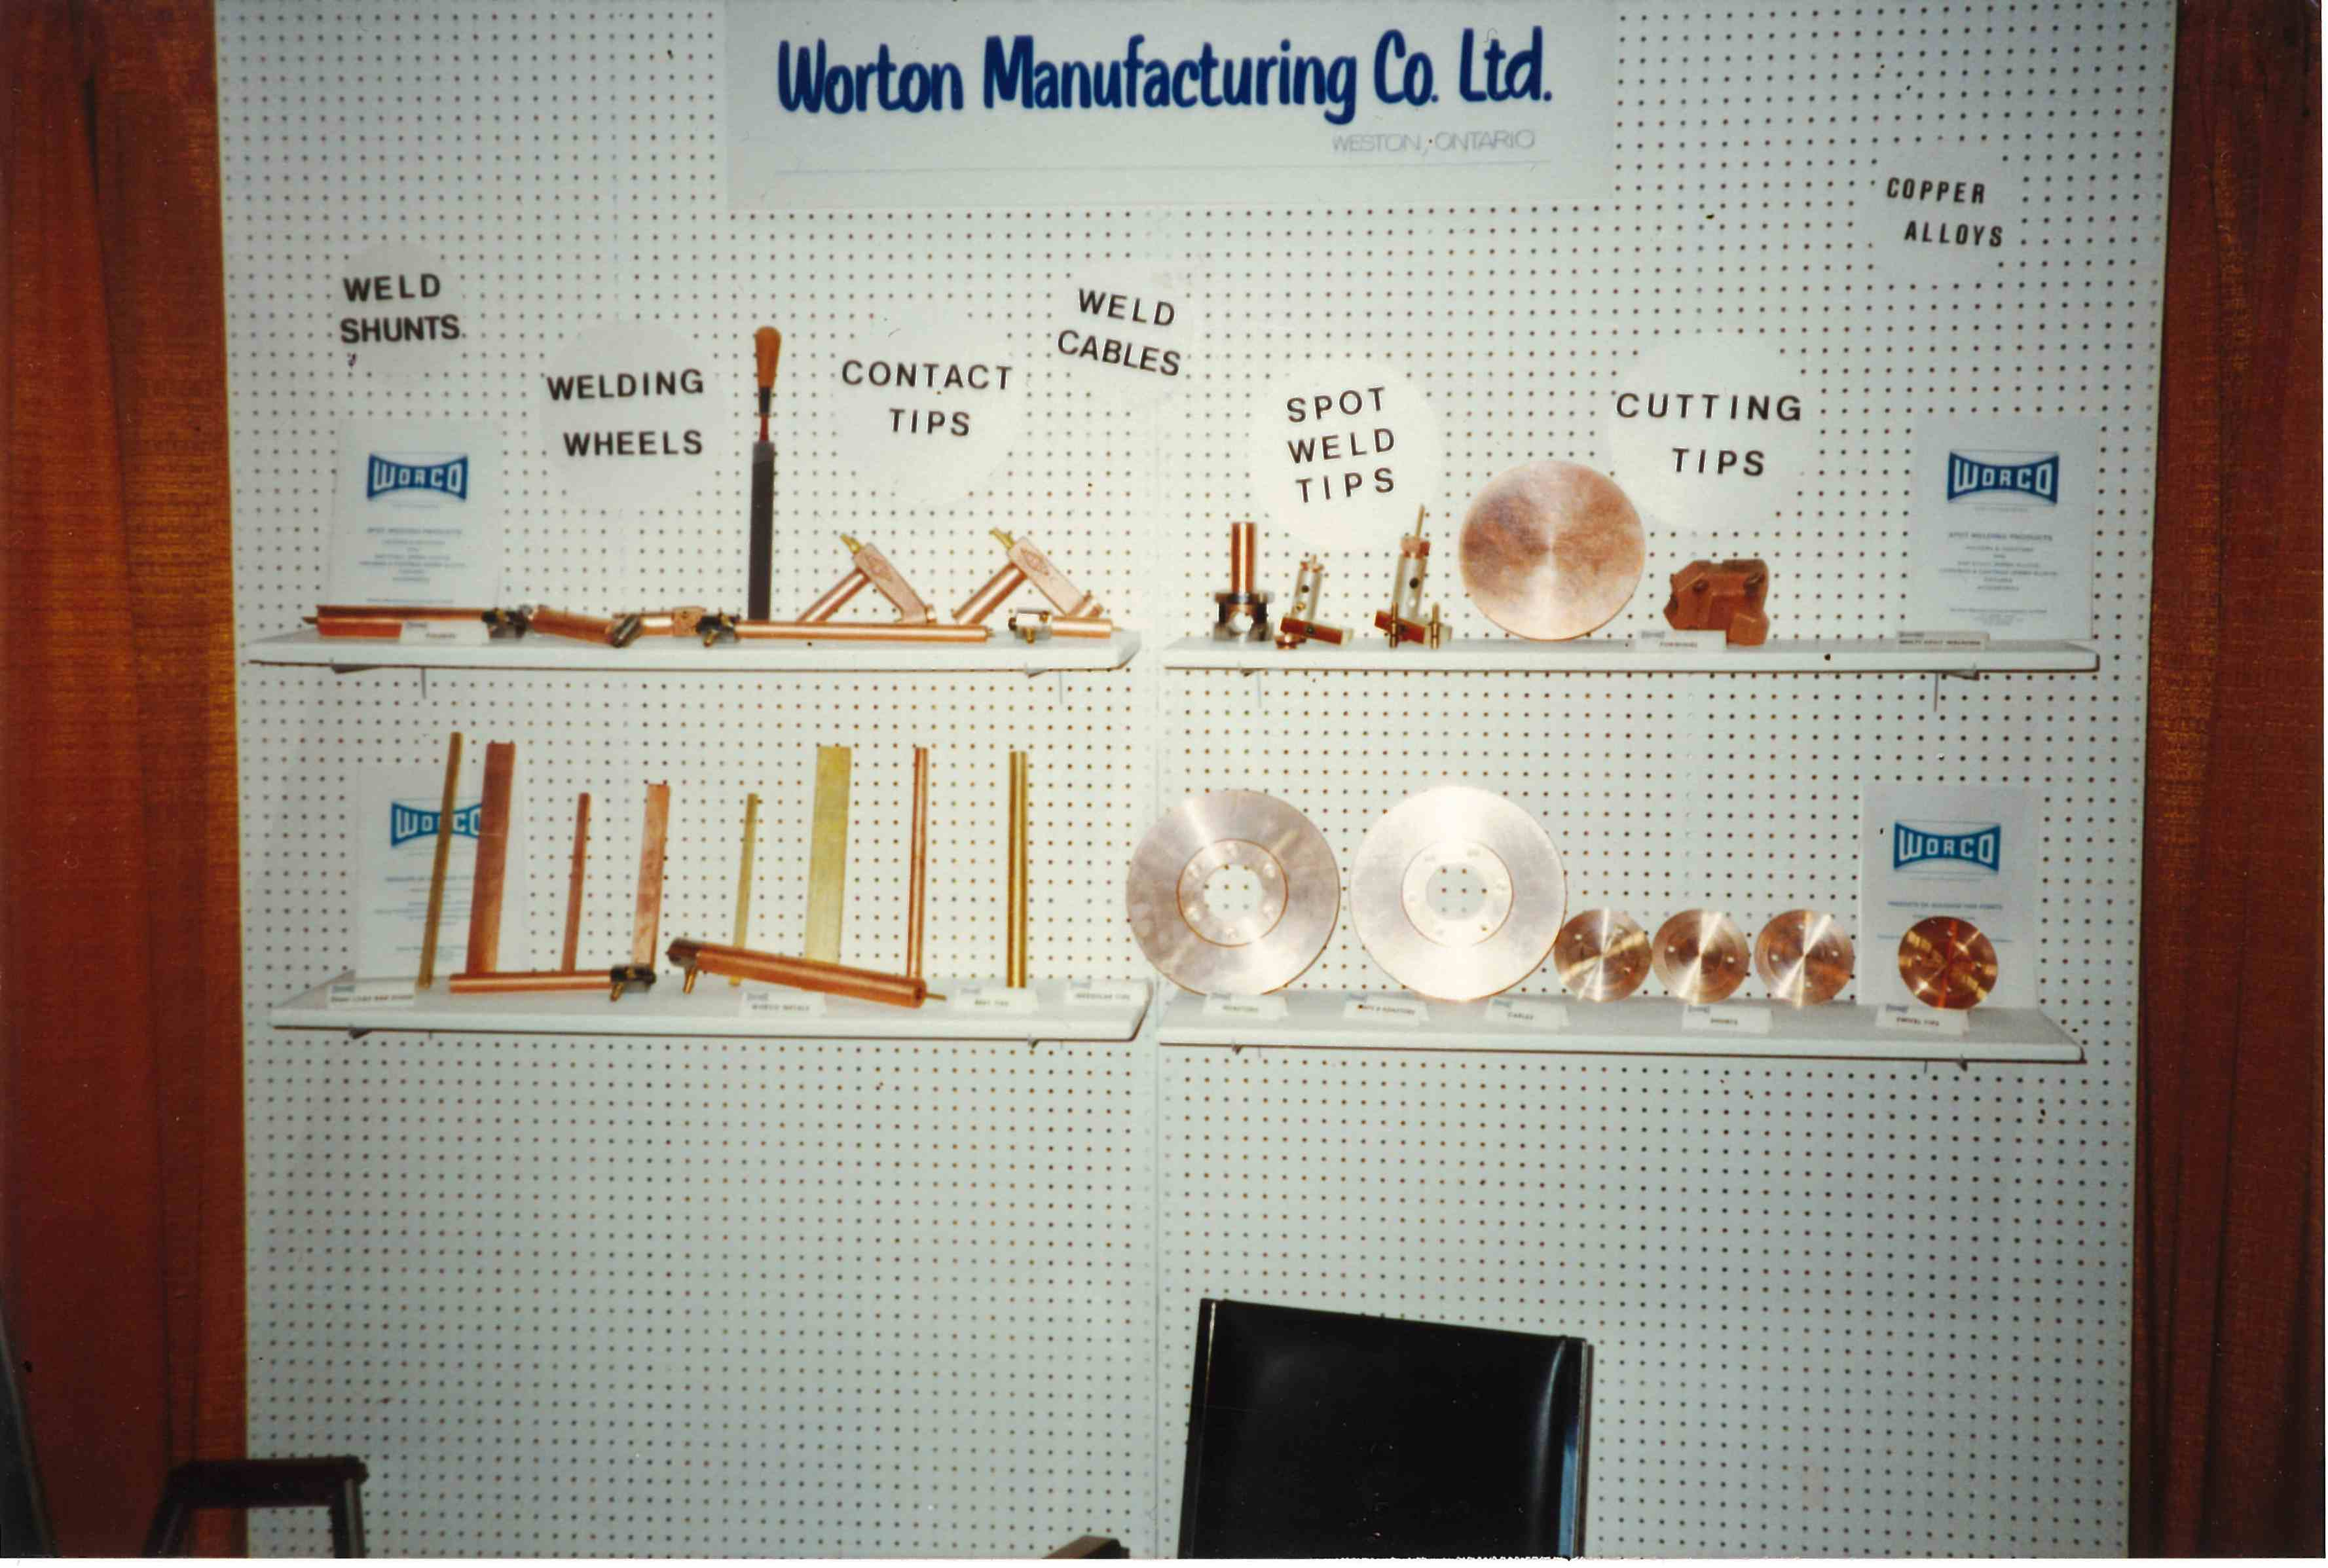 Mid70's-ResWeld - Worton Manufacturing